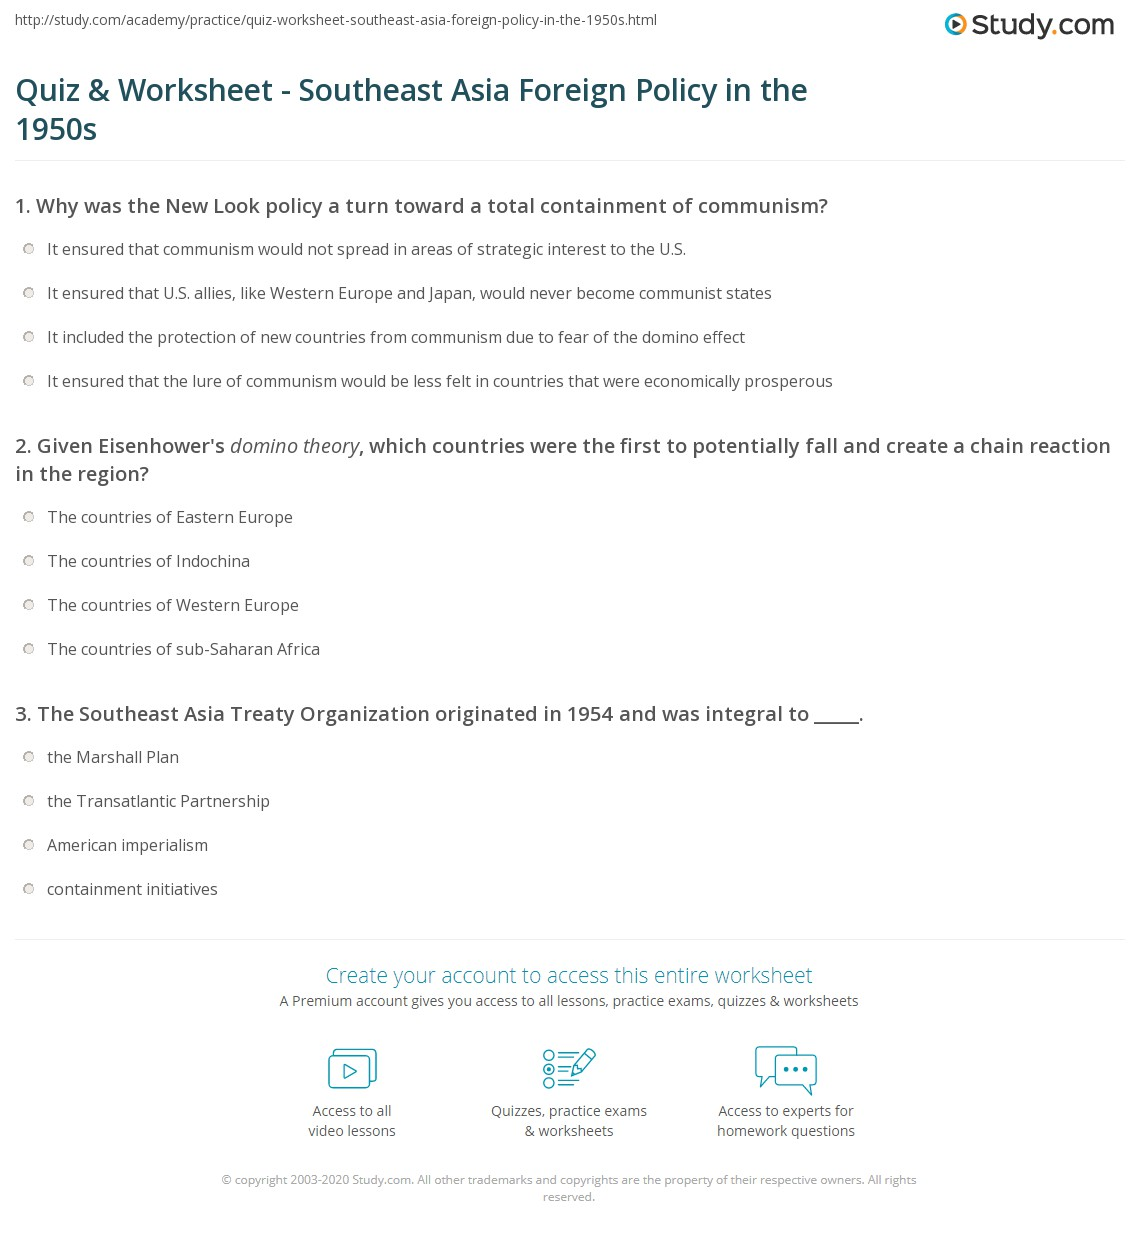 quiz worksheet southeast asia foreign policy in the 1950s. Black Bedroom Furniture Sets. Home Design Ideas